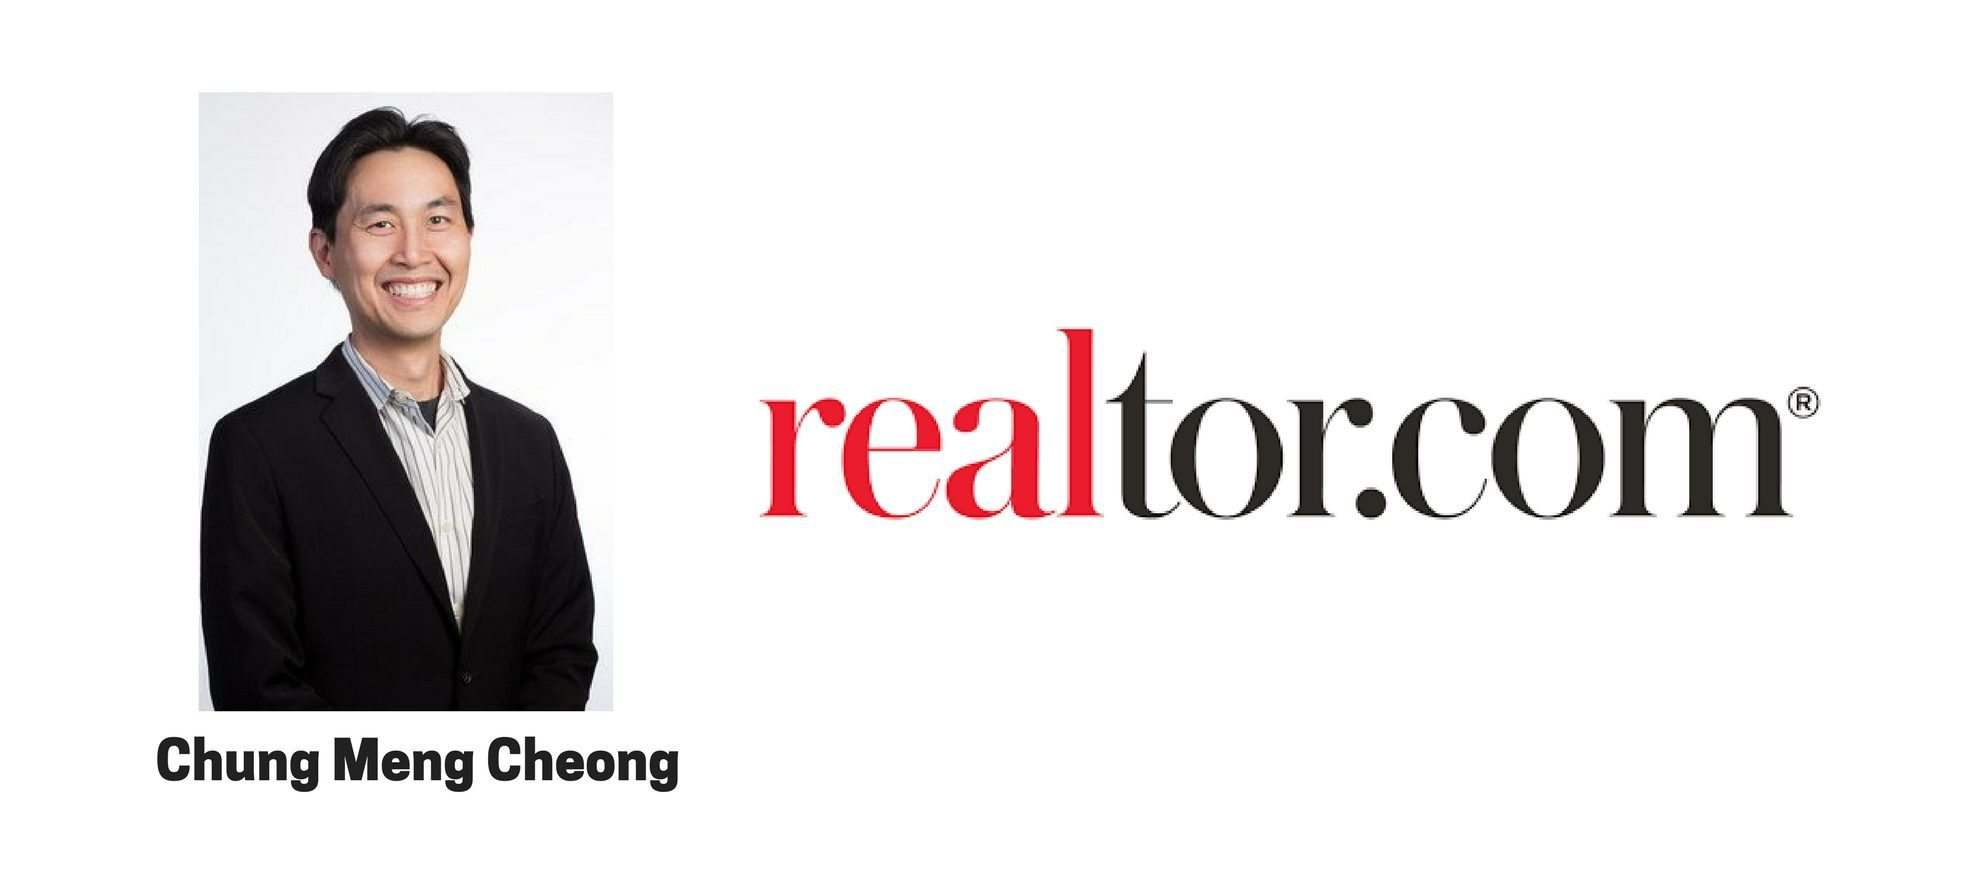 Chung Meng Cheong realtor.com chief product officer